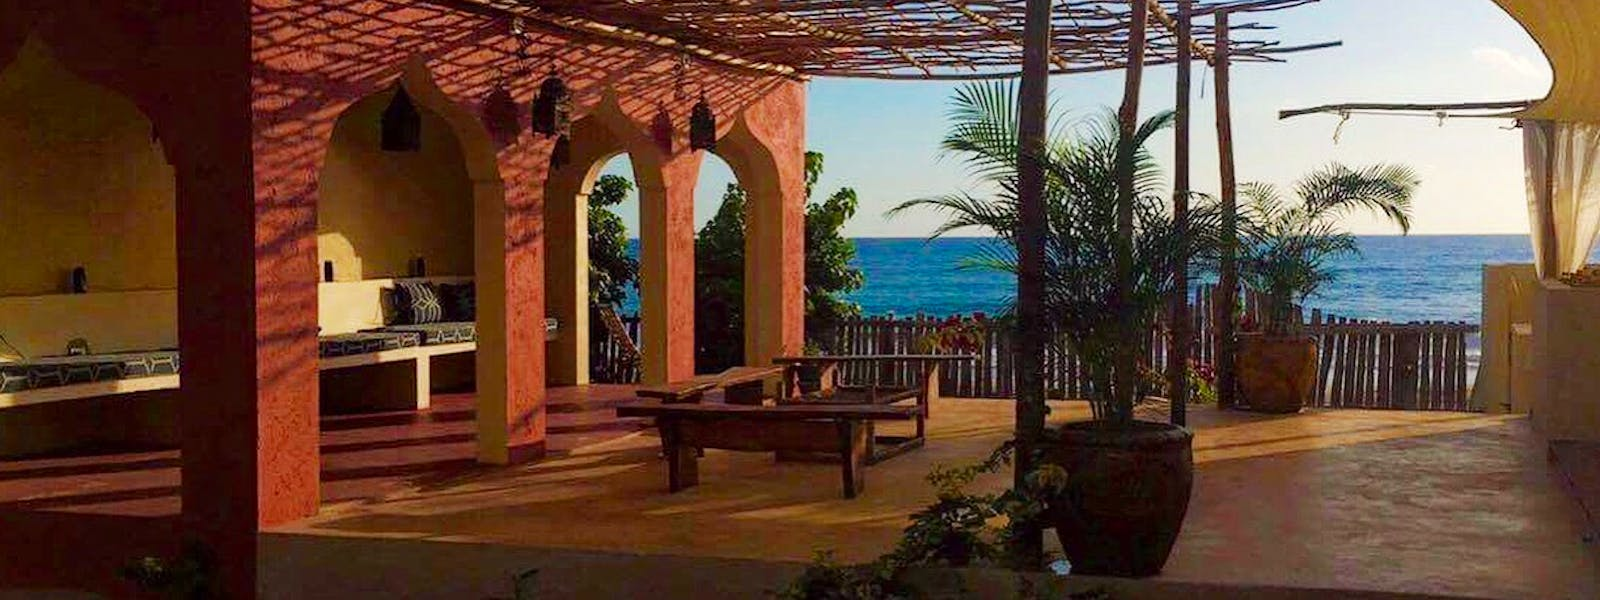 Katamah Jamaica Beachfront Guesthouse Ocean View Treasure Beach Moroccan Design